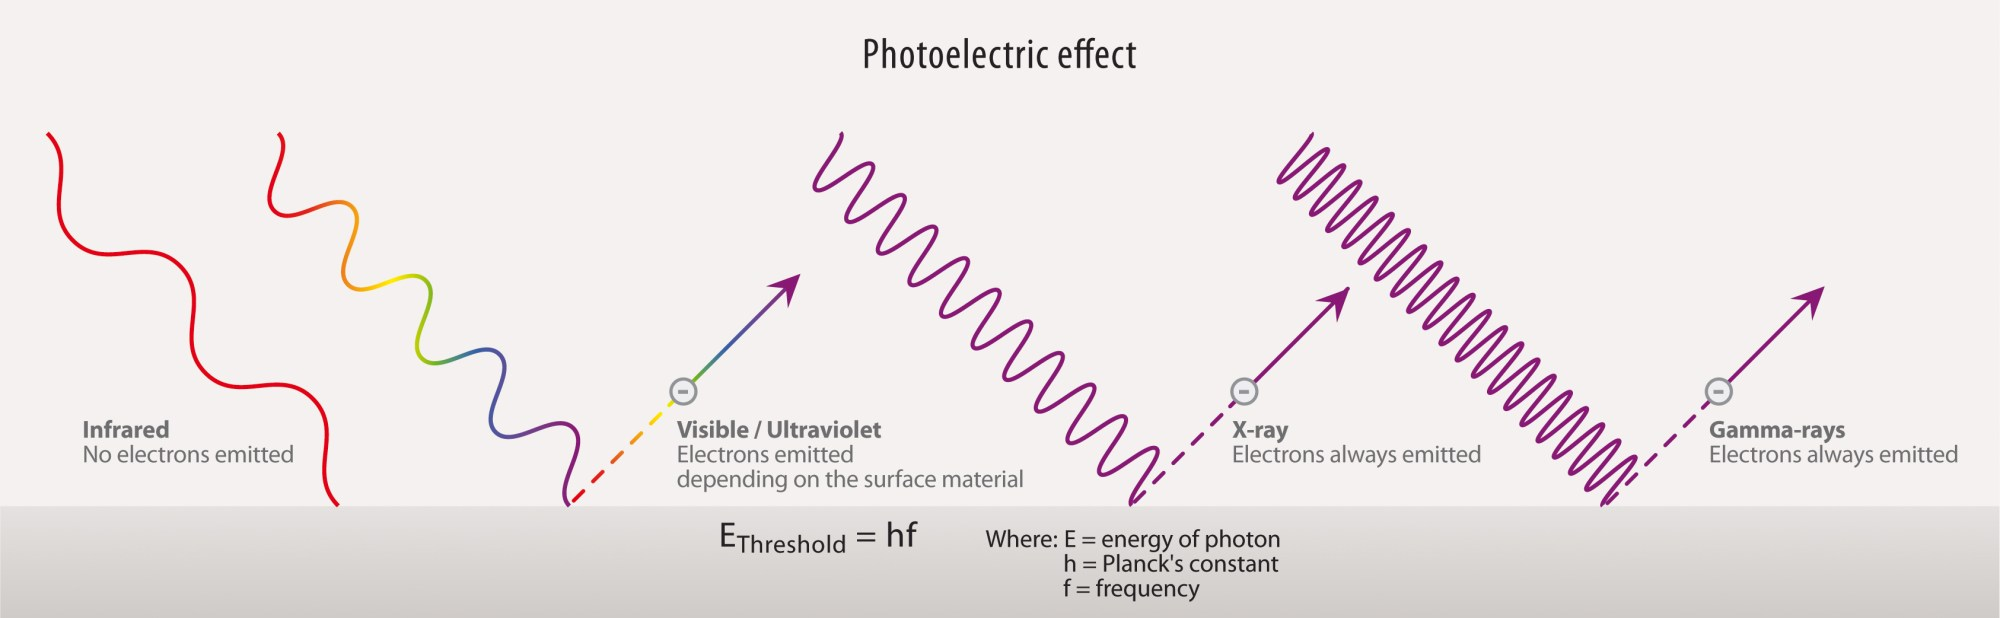 hight resolution of photoelectric effect